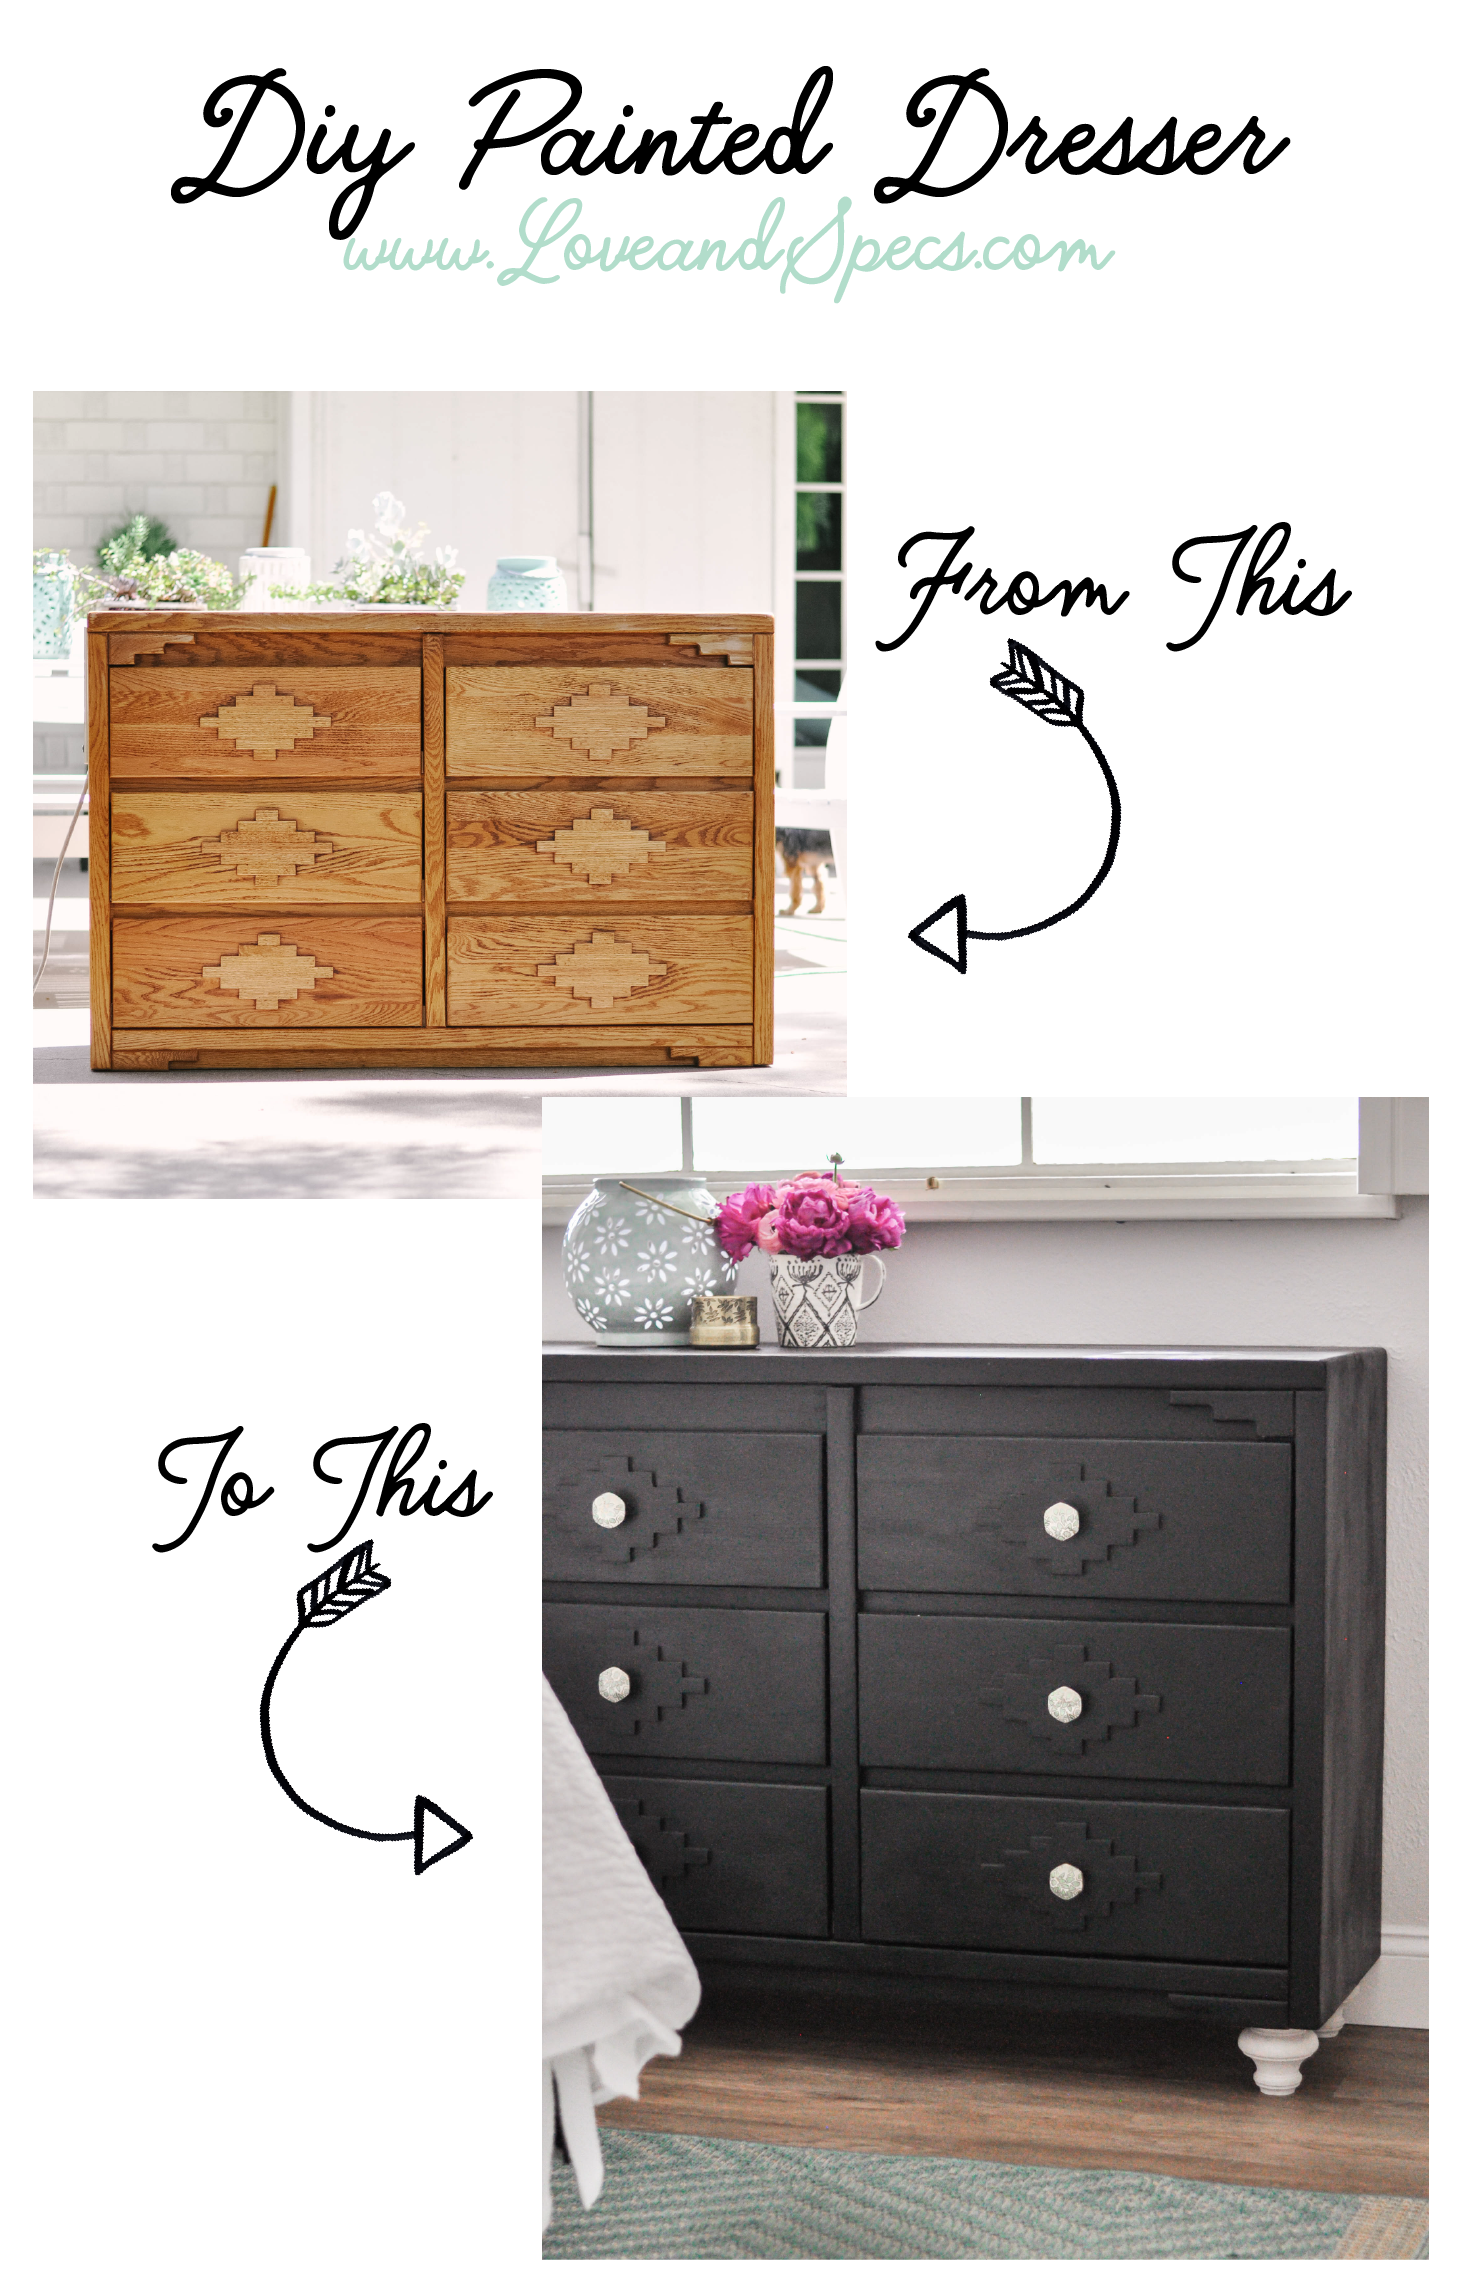 Diy Painted Dresser Love And Specs